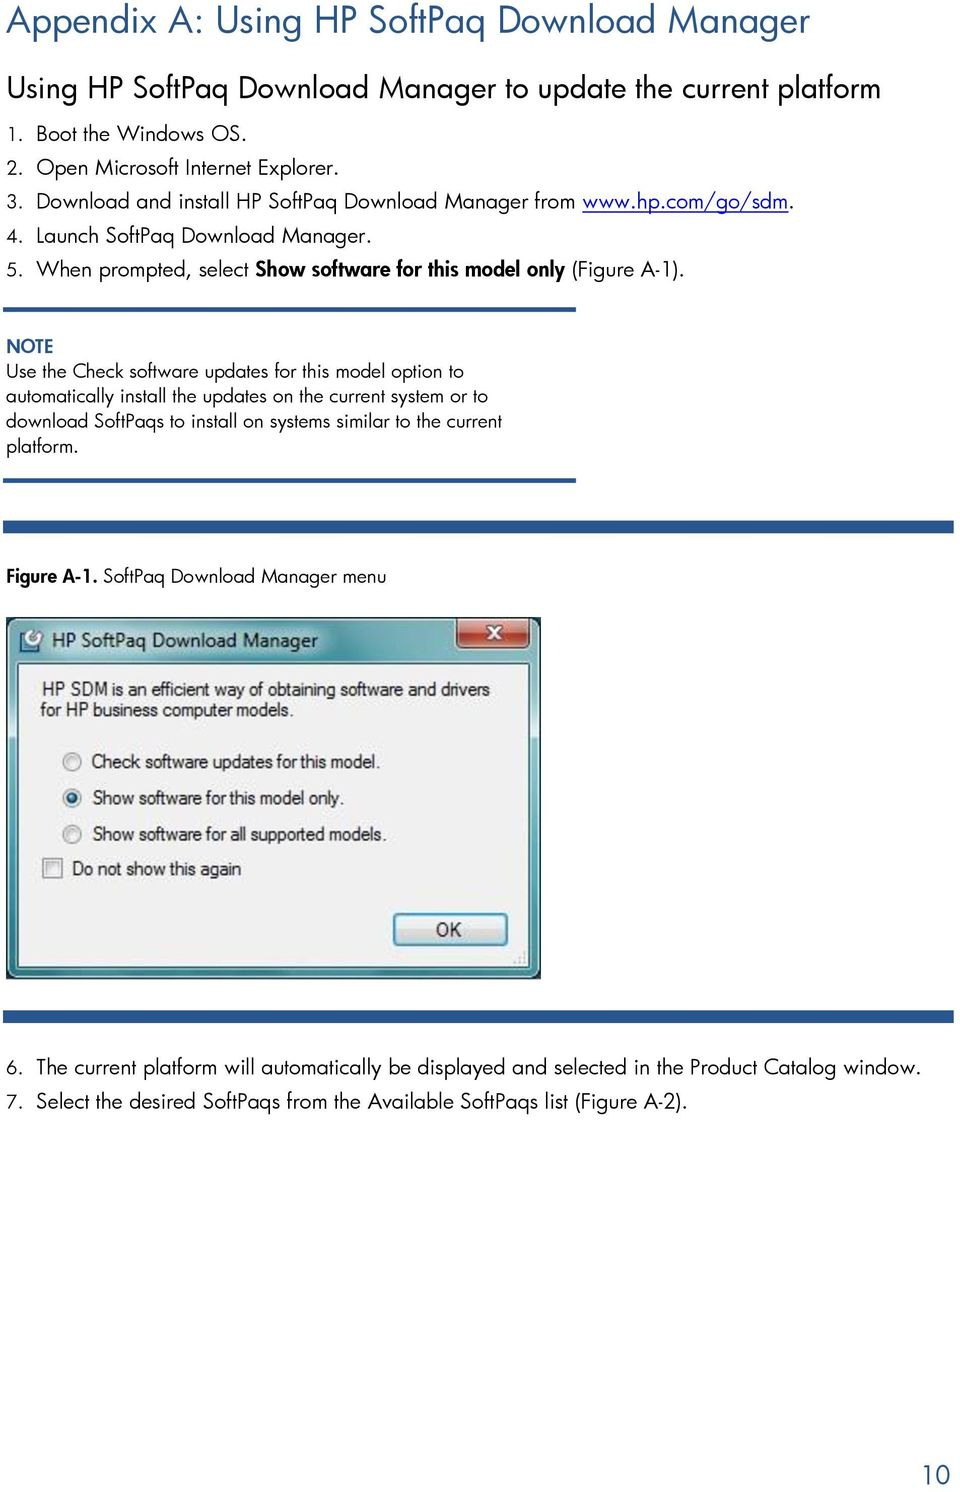 Building a Common Image with Microsoft Windows 7 on HP Pro